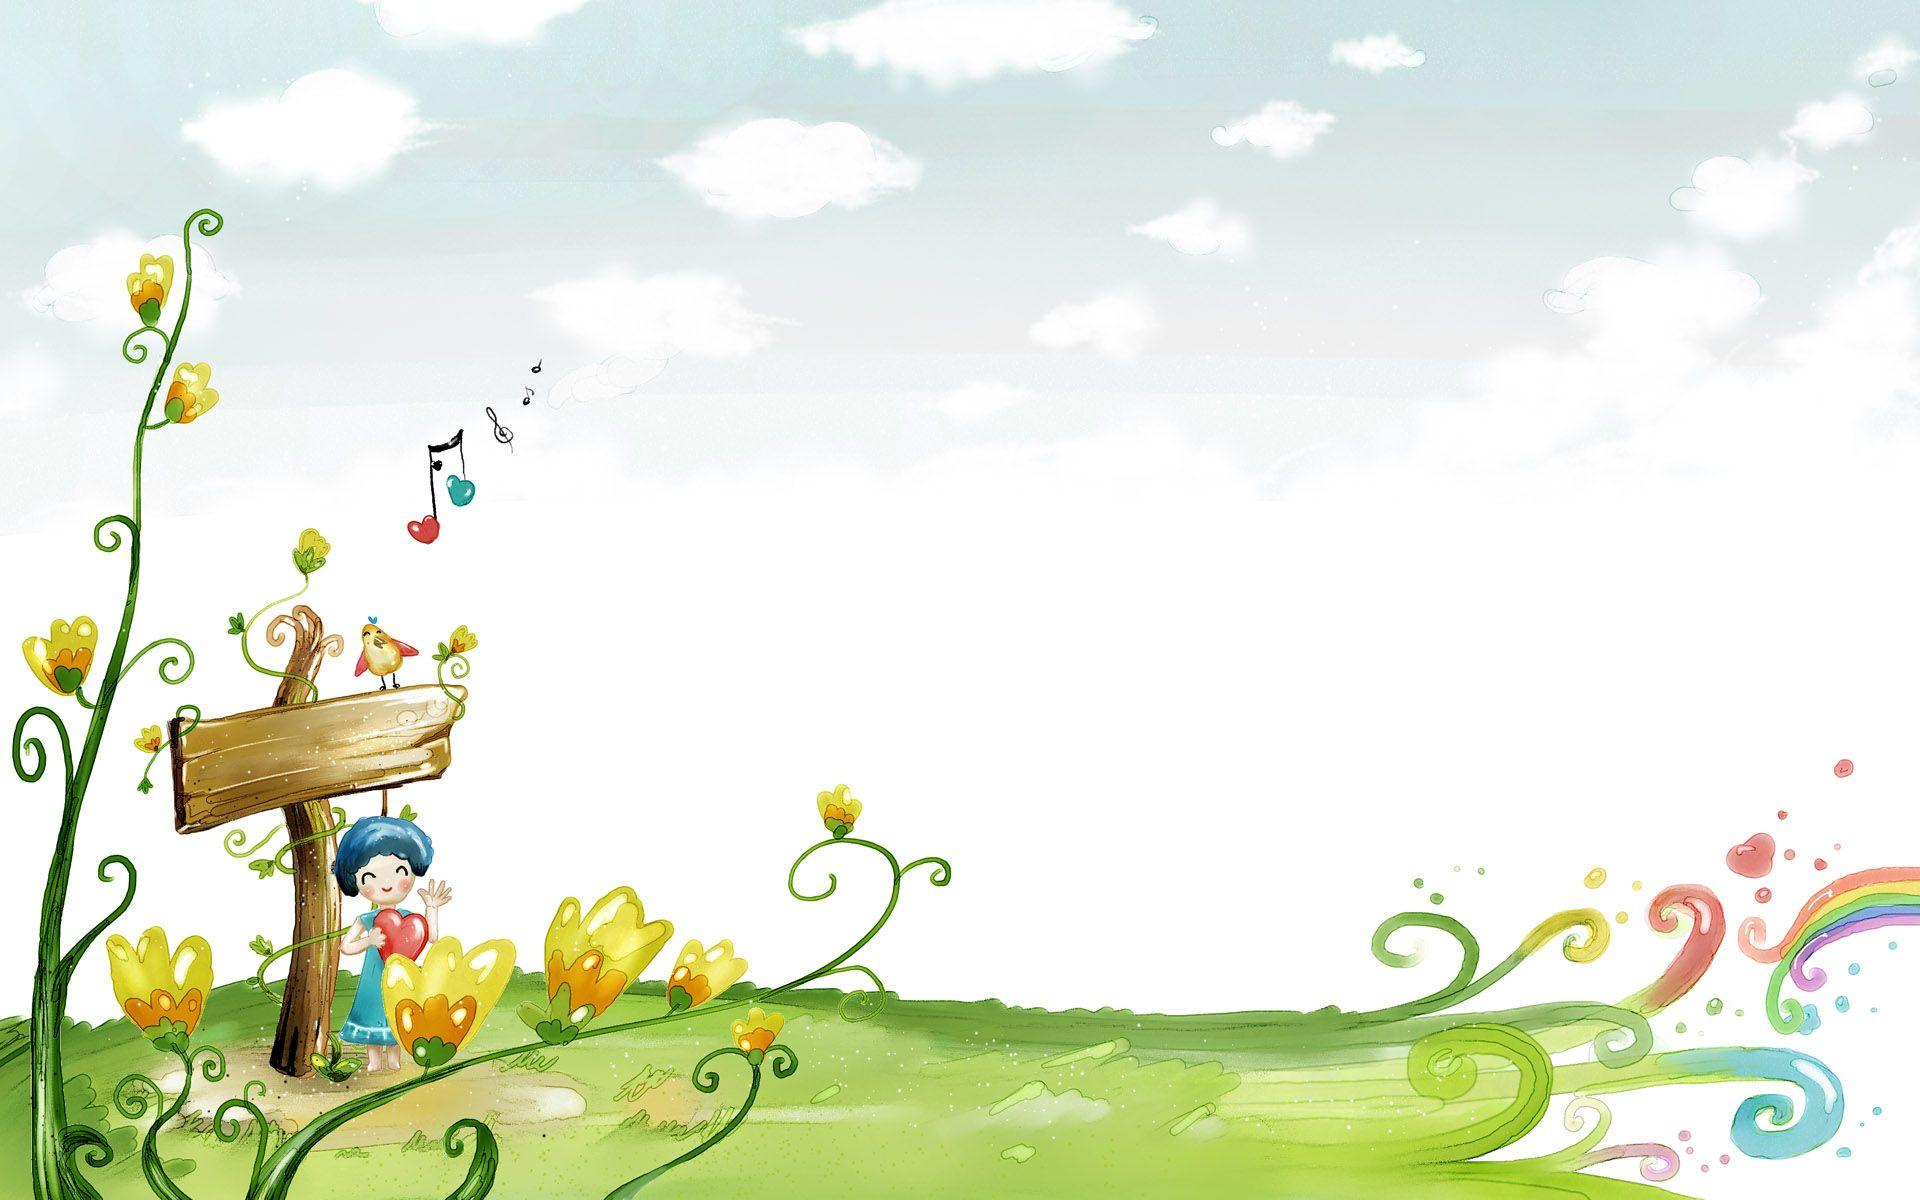 Cute Cartoon Backgrounds Free Download: Cartoon Backgrounds Image